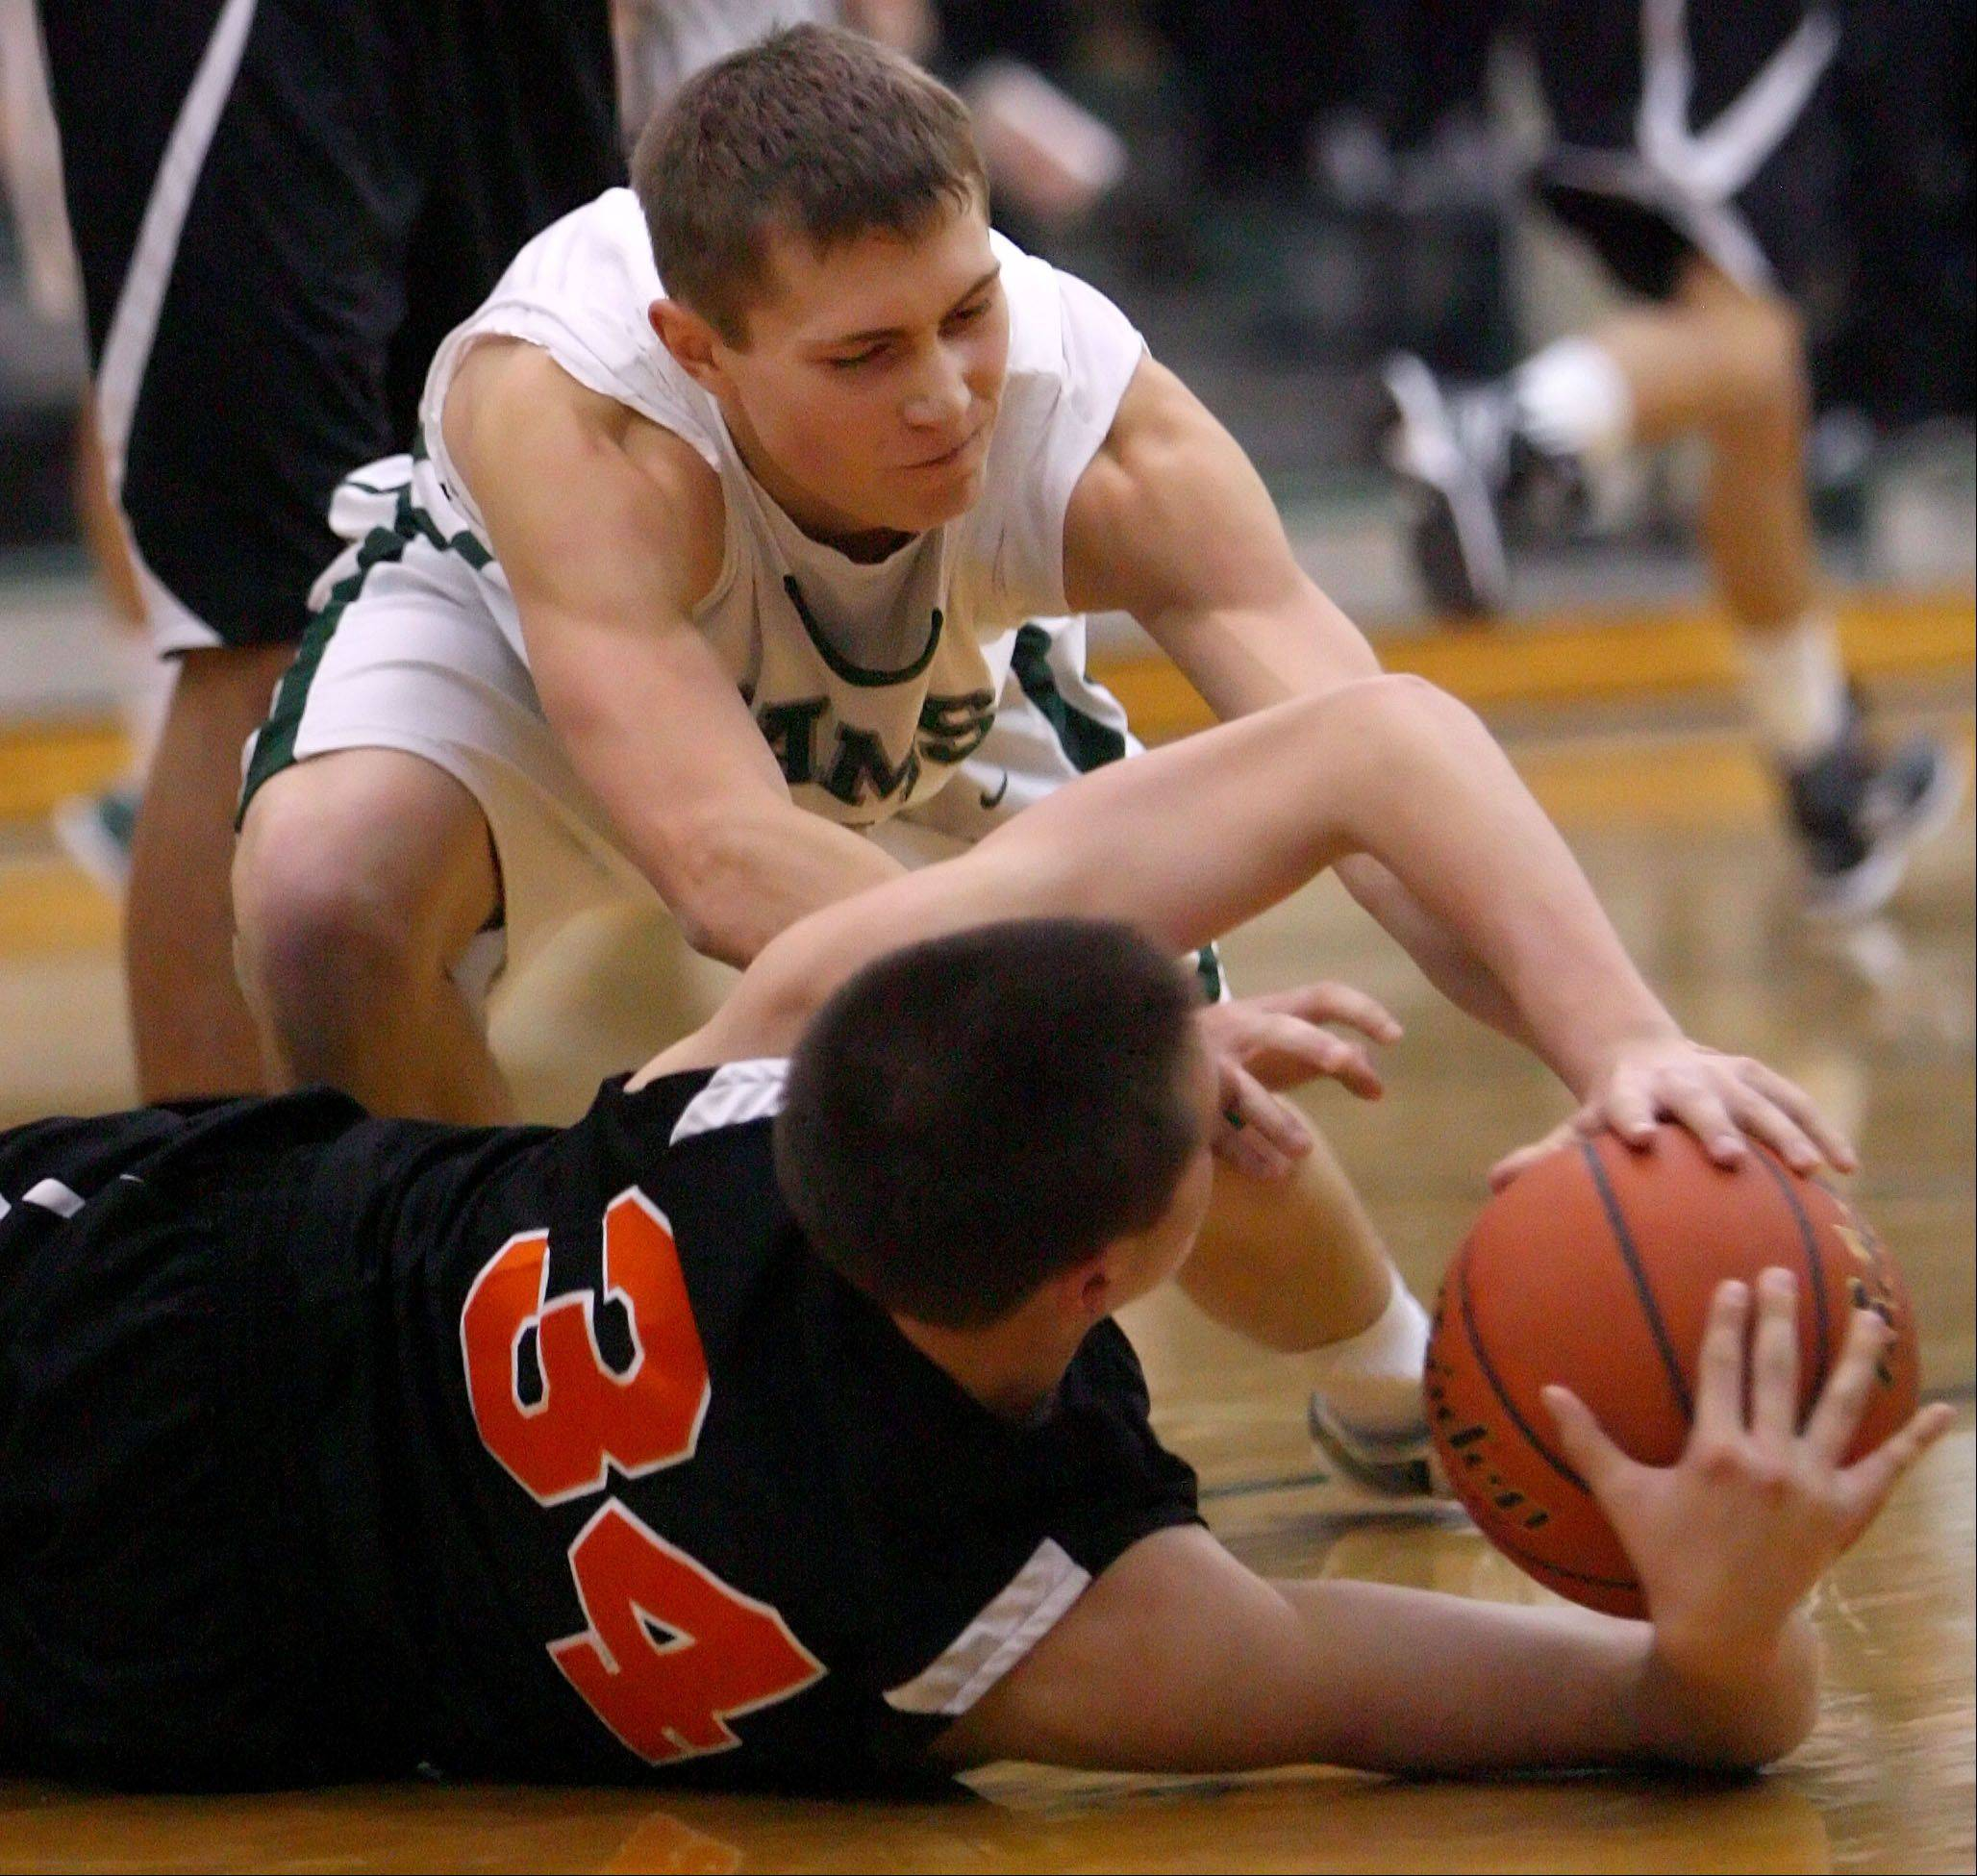 Grayslake Central's Sean Geary and Crystal Lake Central's Jake Vanscoyoc battle for a loose ball Wednesday night at Grayslake Central.